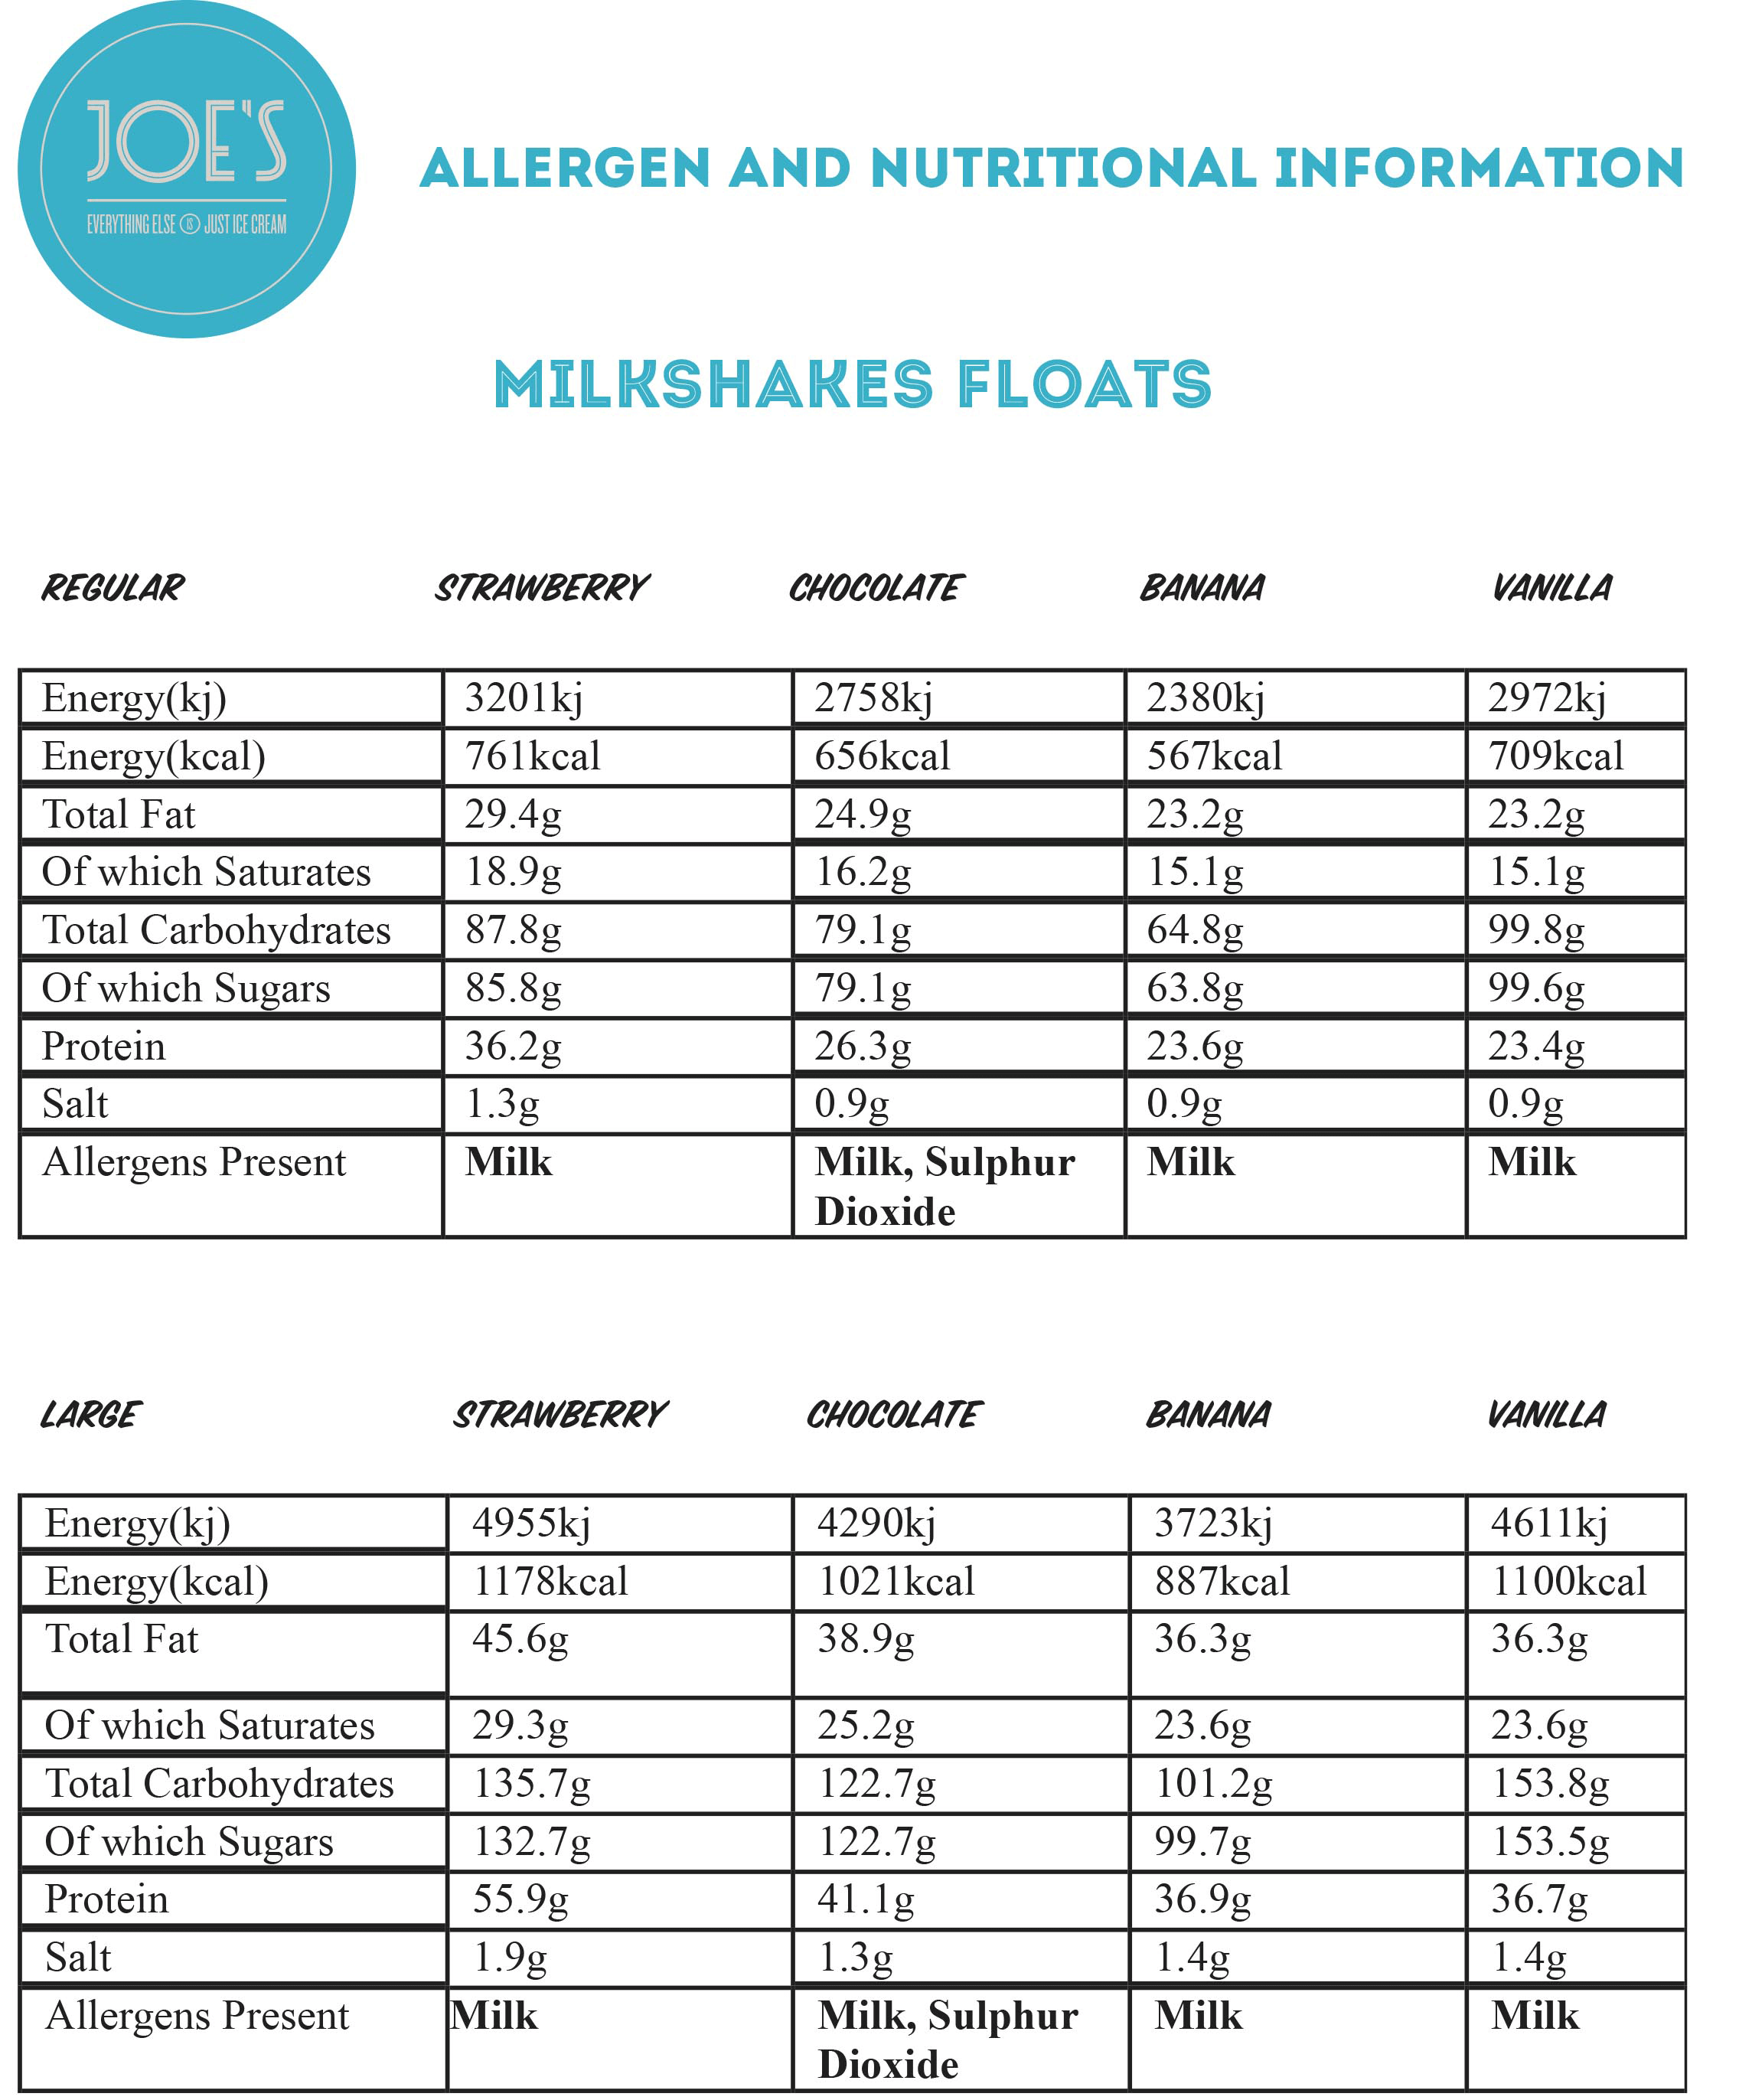 Milkshakes Floats